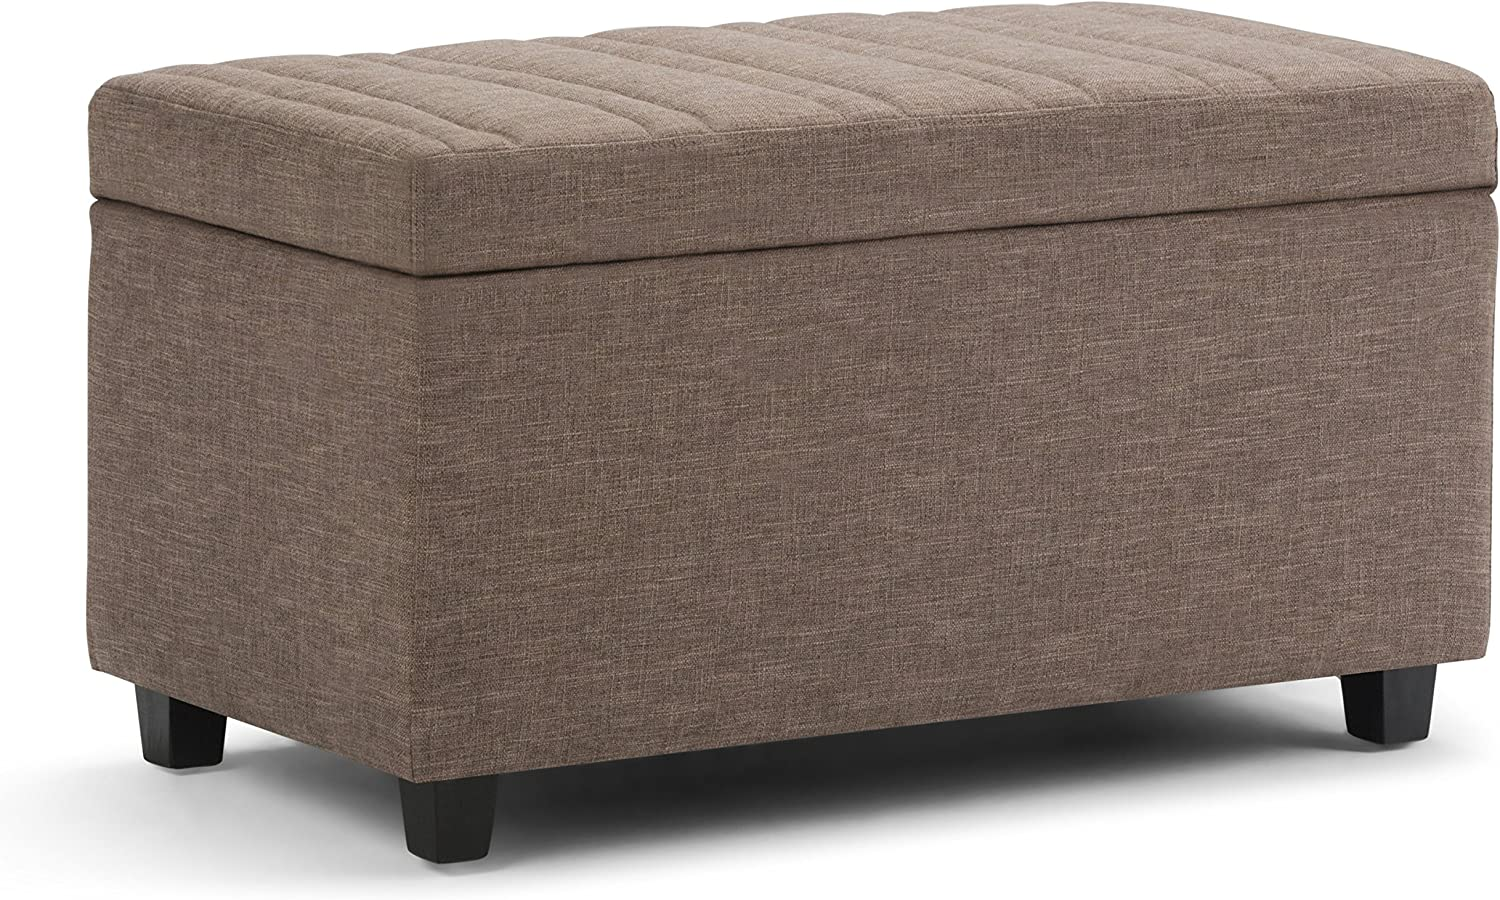 SIMPLIHOME Darcy 34 inch Wide Rectangle Lift Top Storage Ottoman Bench in Fawn Brown Linen Look Fabric, Footrest Stool, Coffee Table for the Living Room, Bedroom, and Kids Room, Contemporary